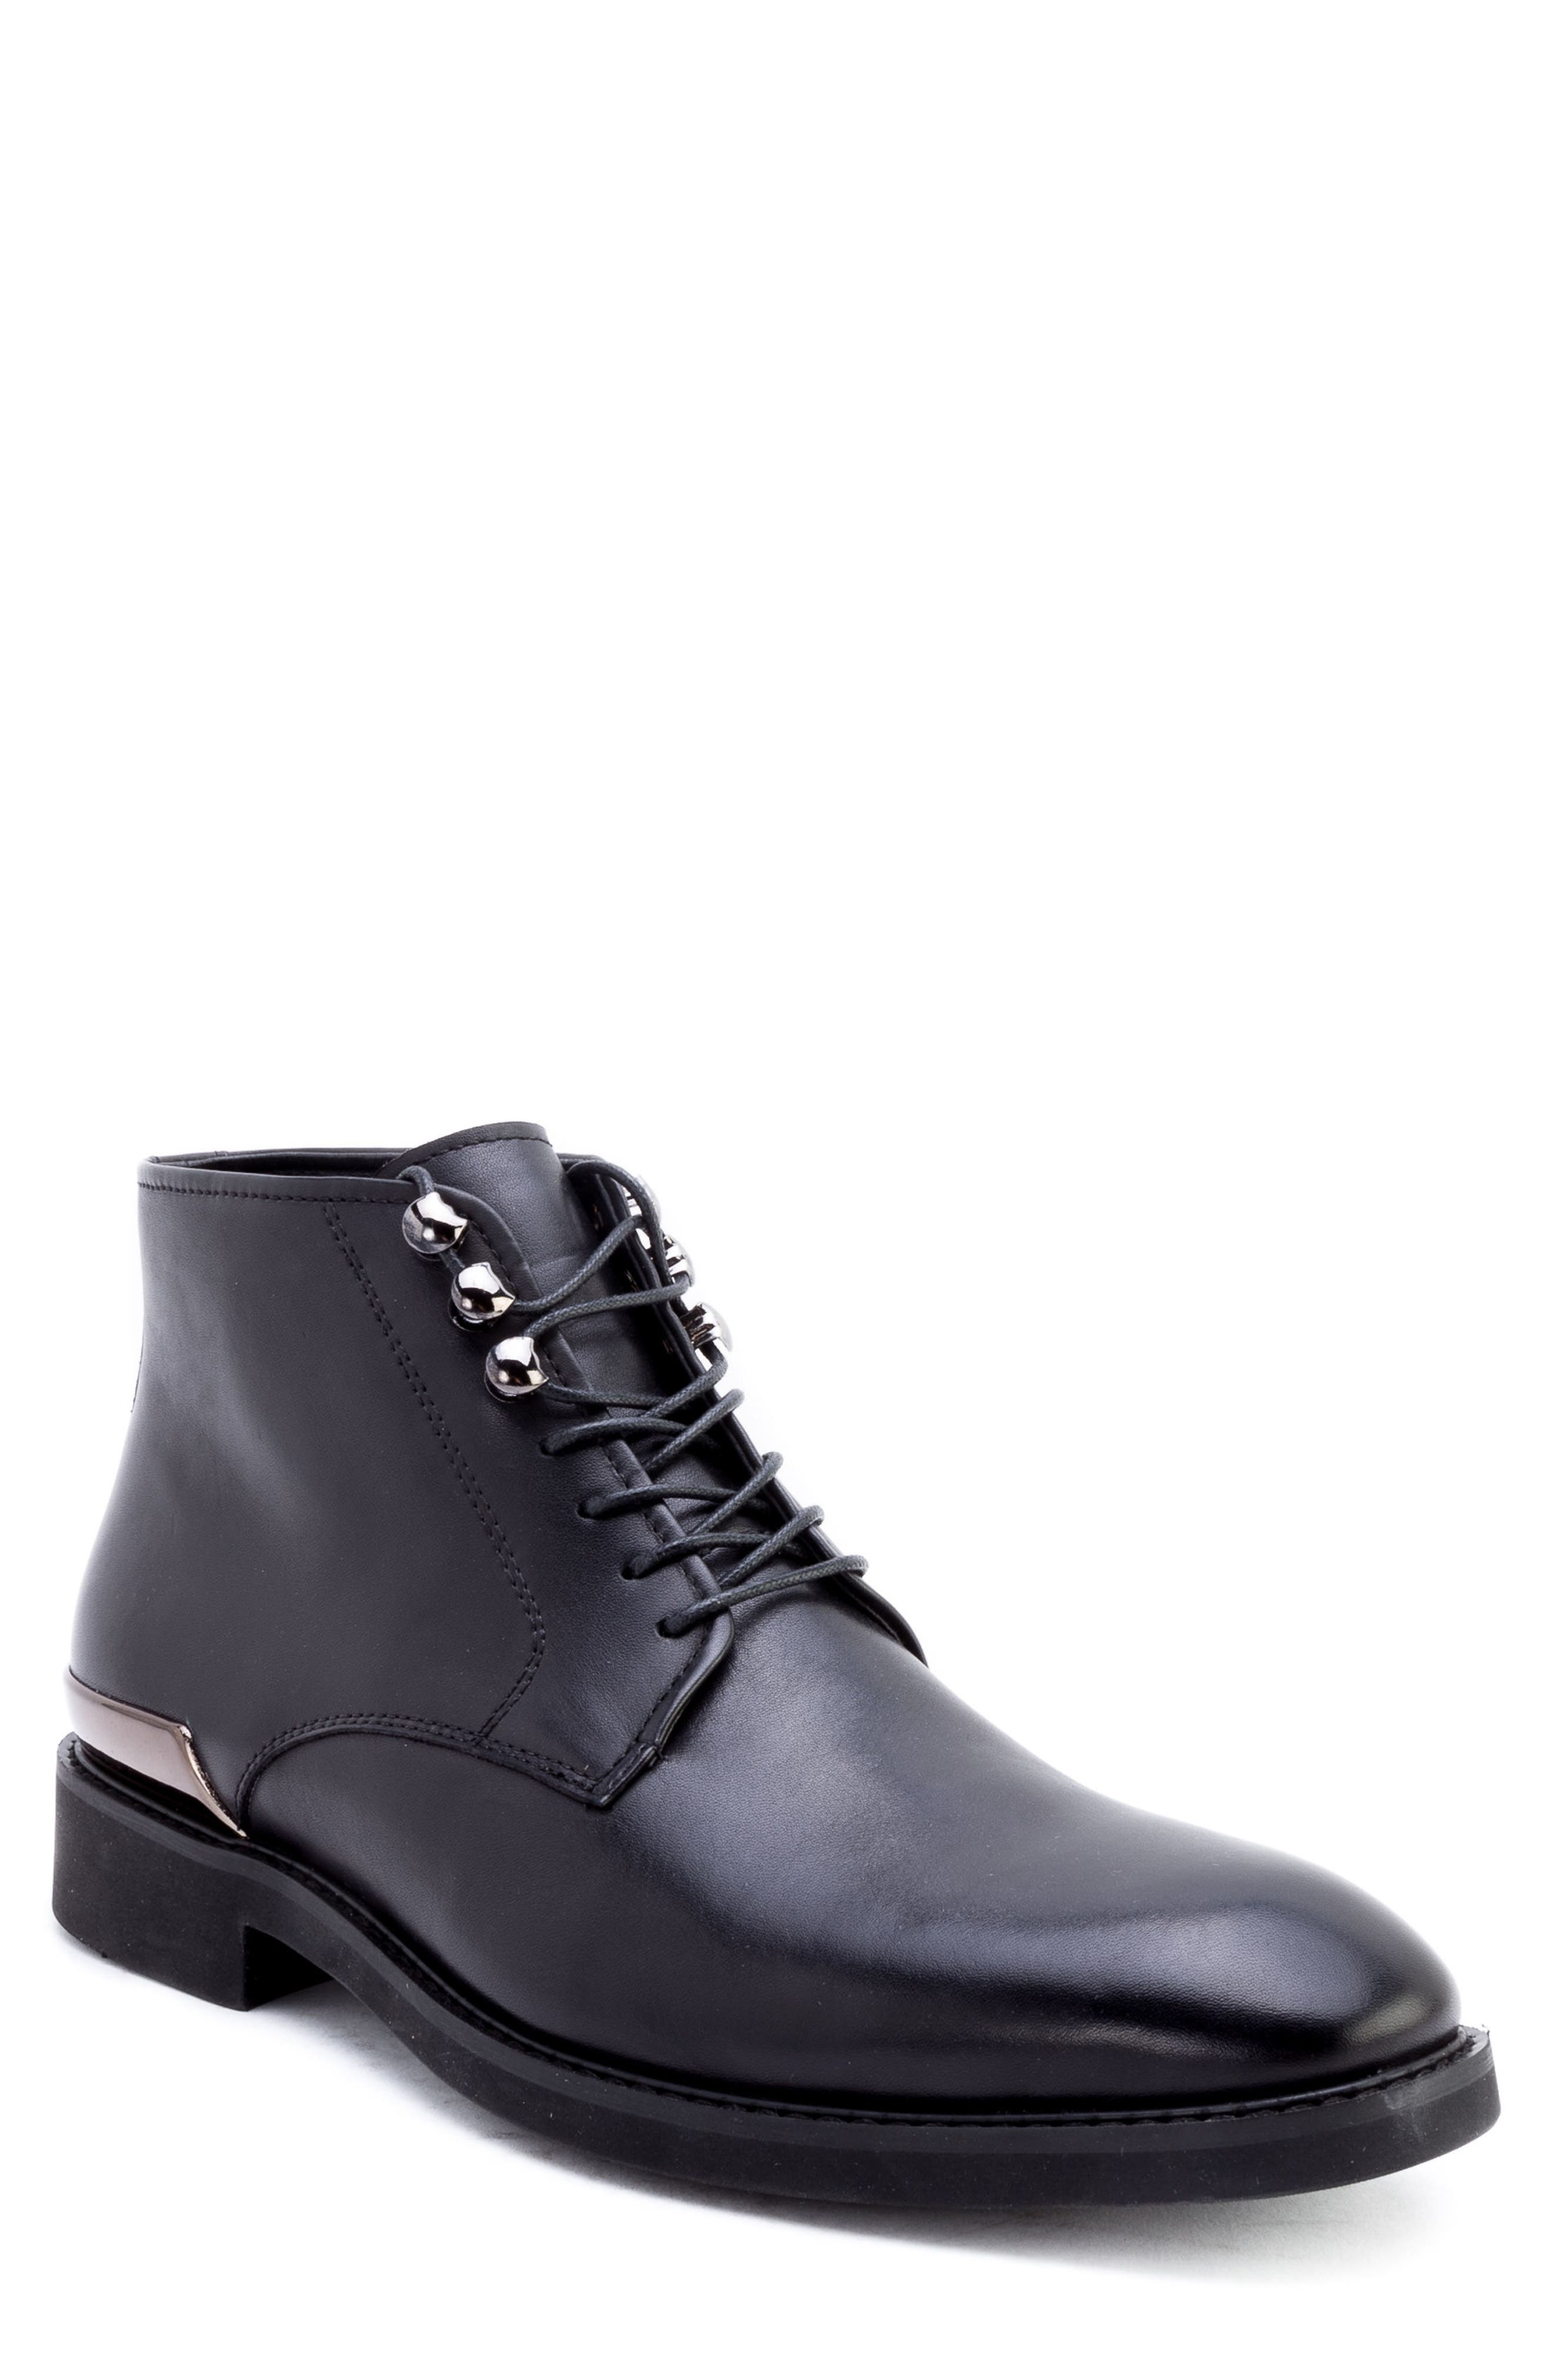 Image of Zanzara Soland Leather Lace-Up Boot